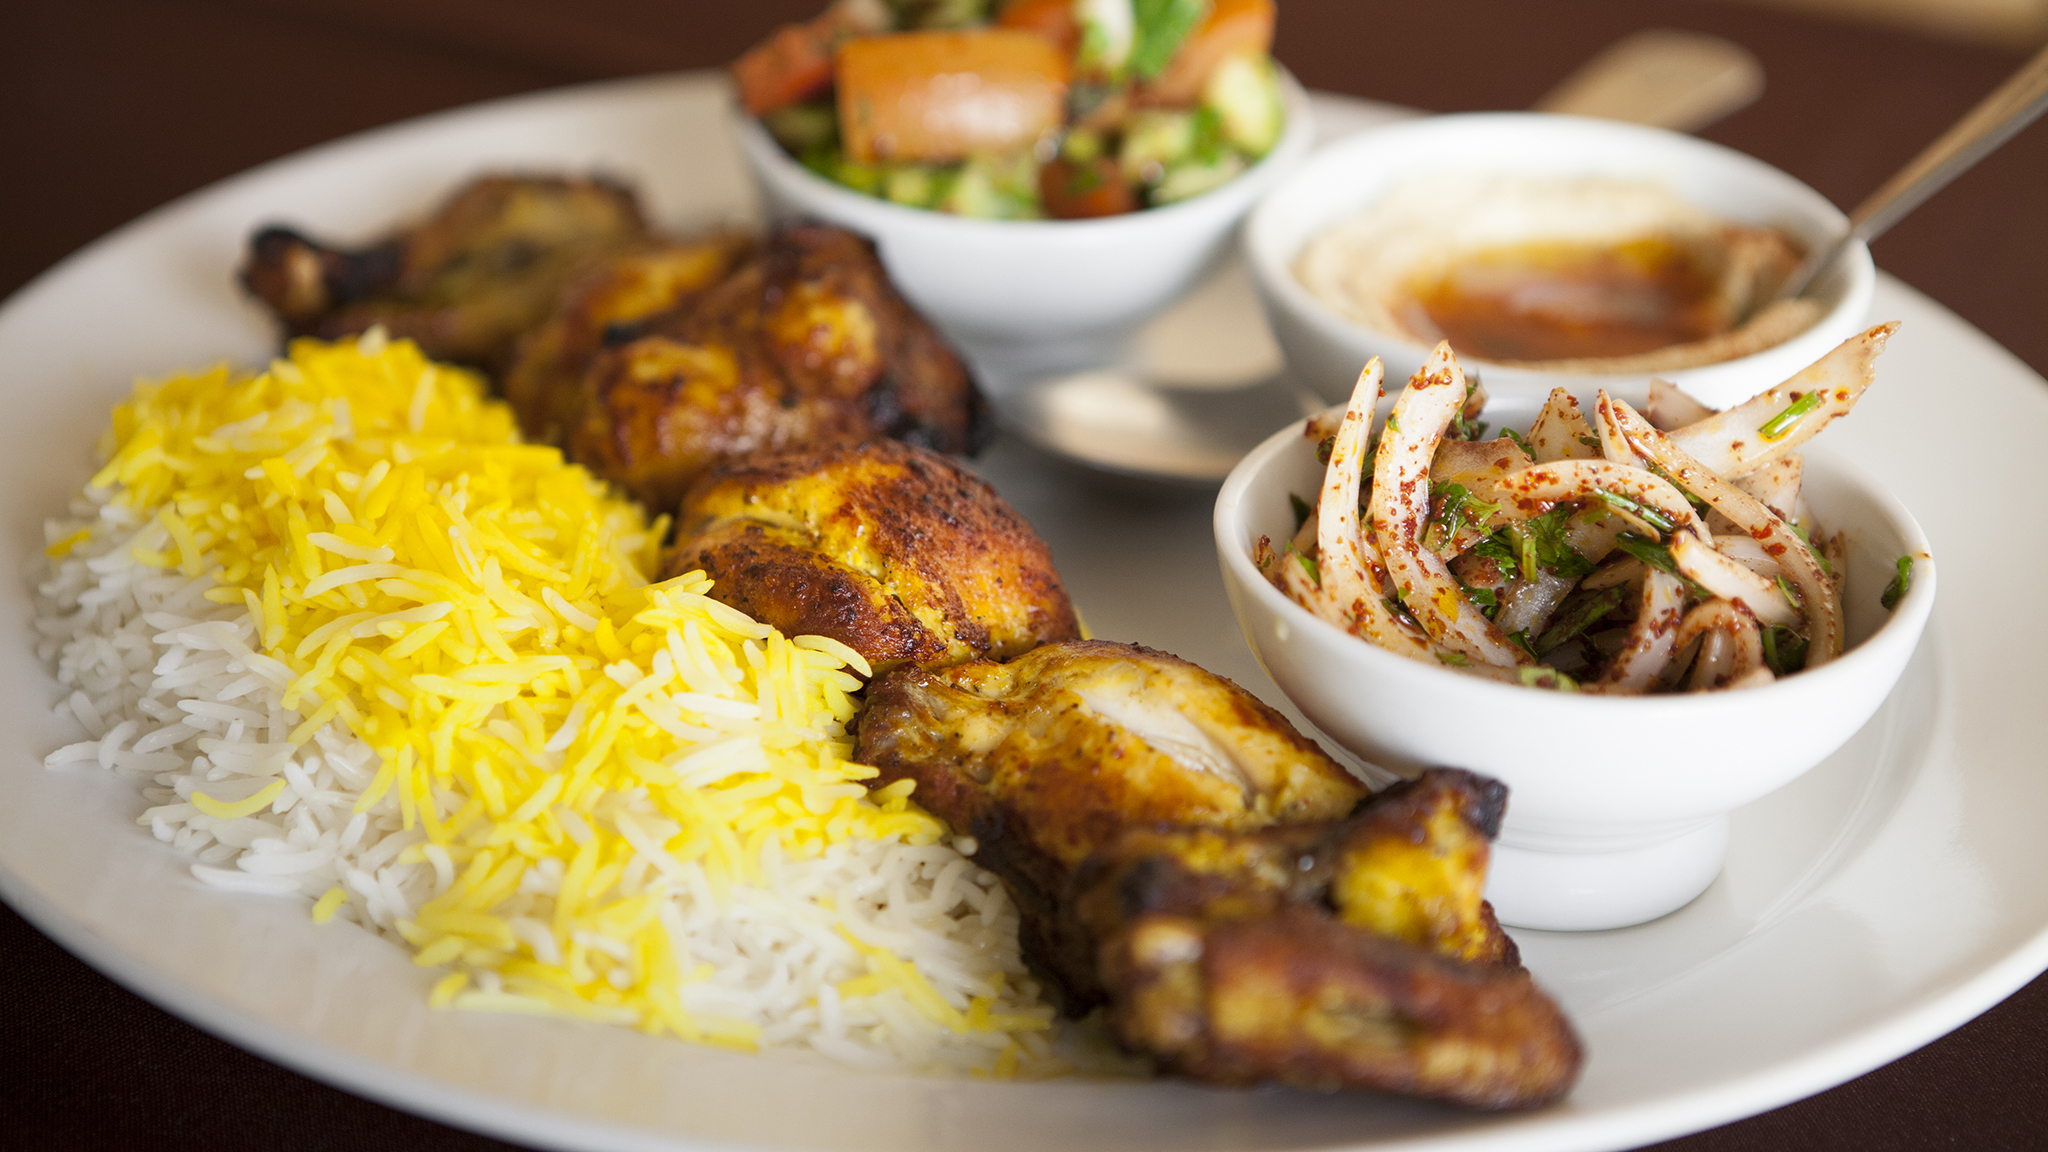 The best kebab dishes in LA